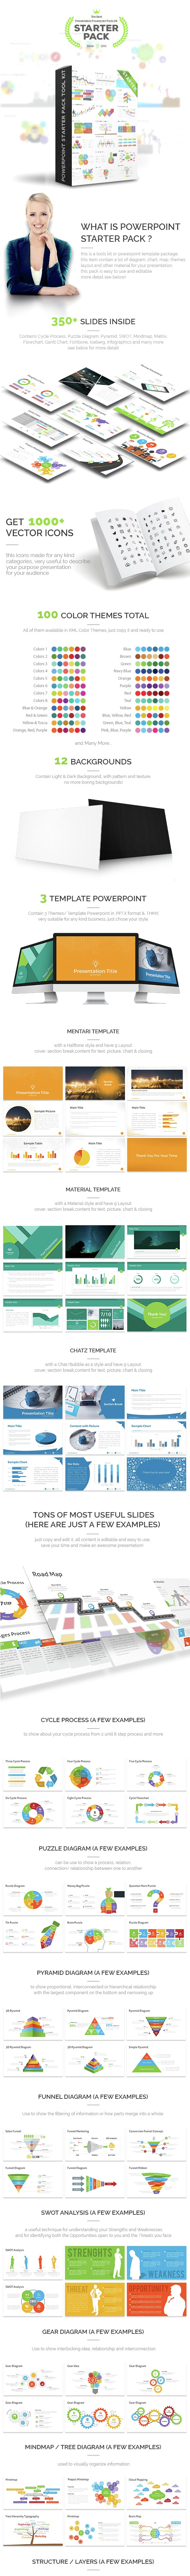 Powerpoint Presentation Starter Pack - Business PowerPoint Templates